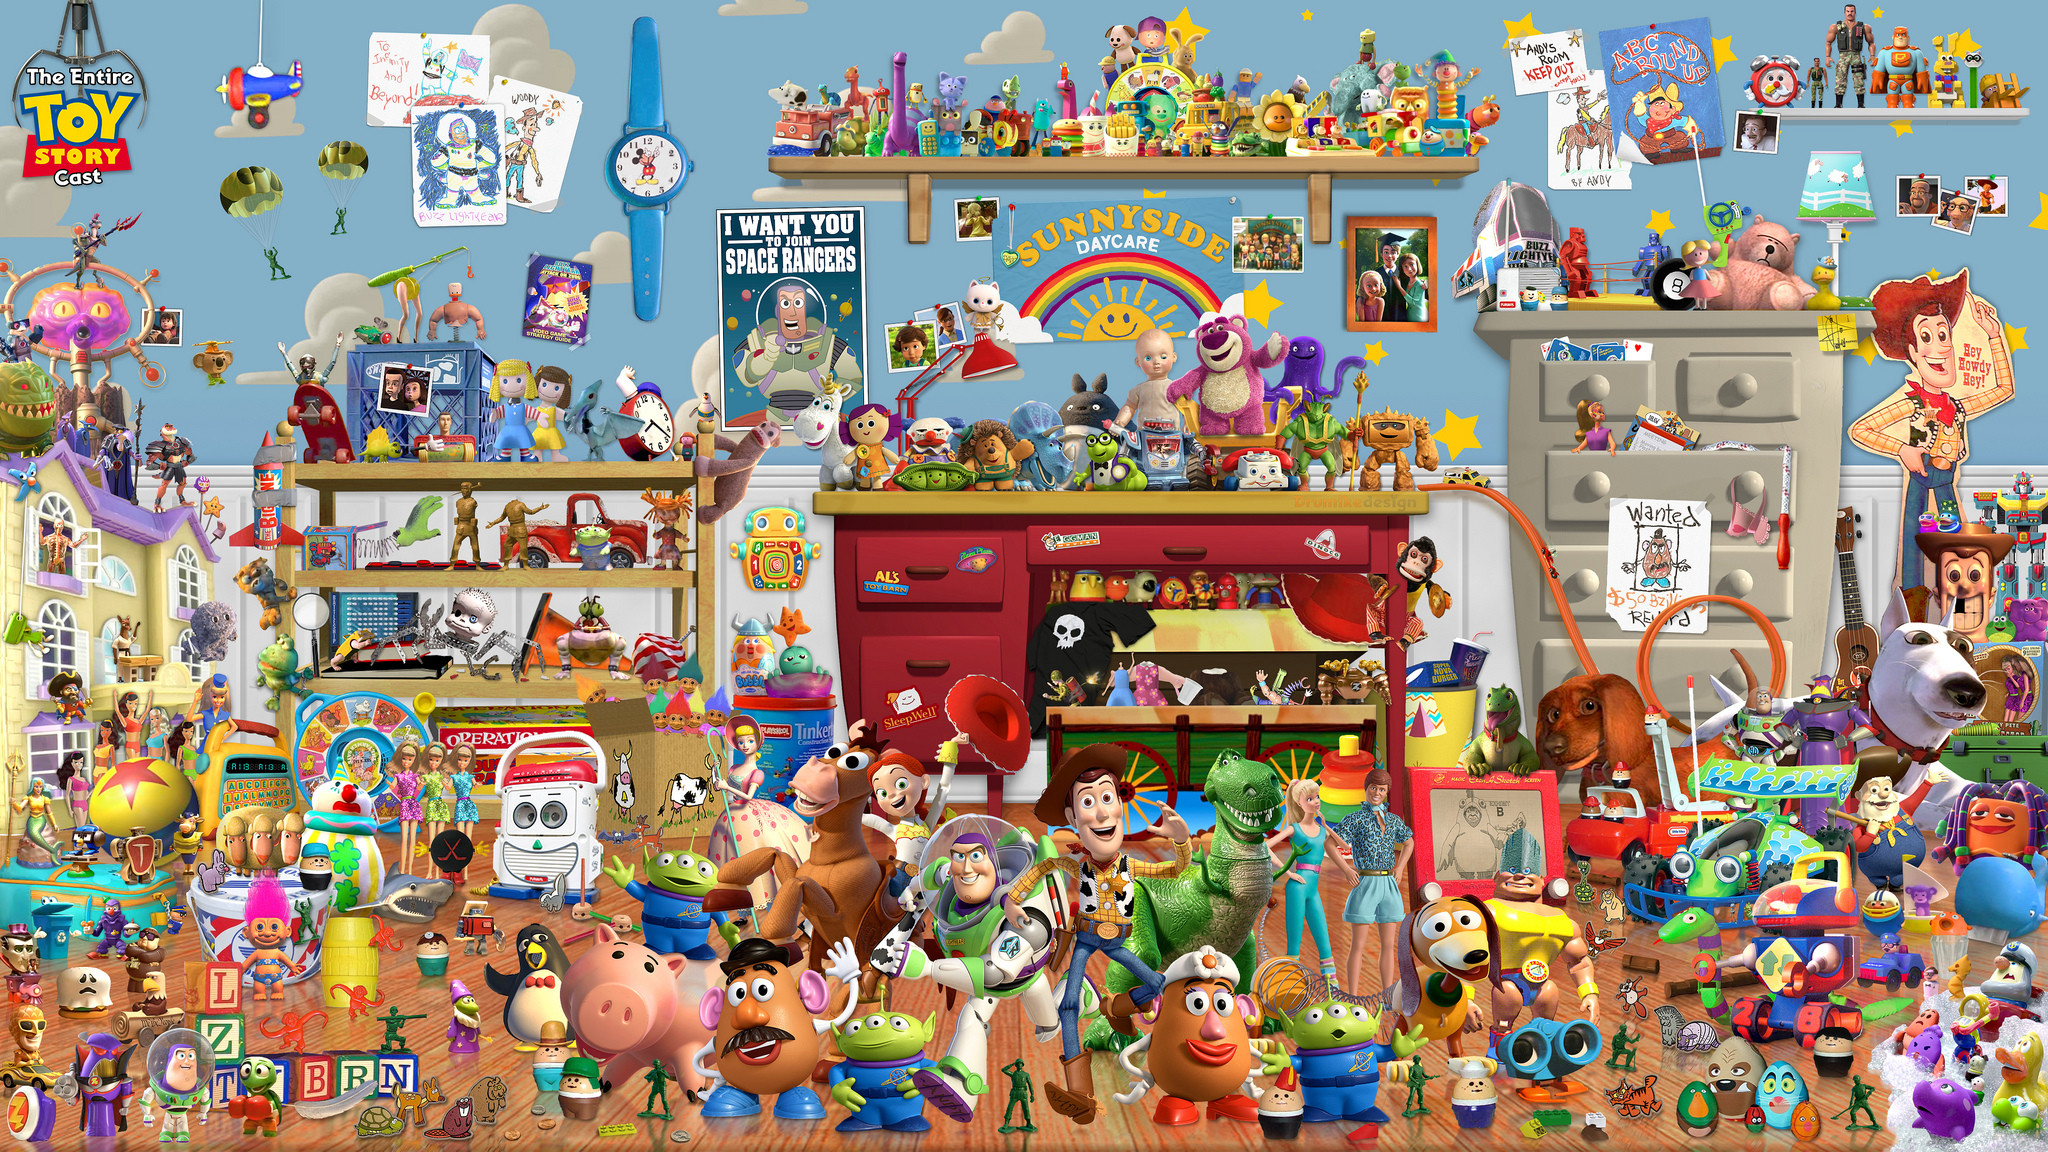 Toy story wallpaper for desktop 55 images - Toy story wallpaper ...